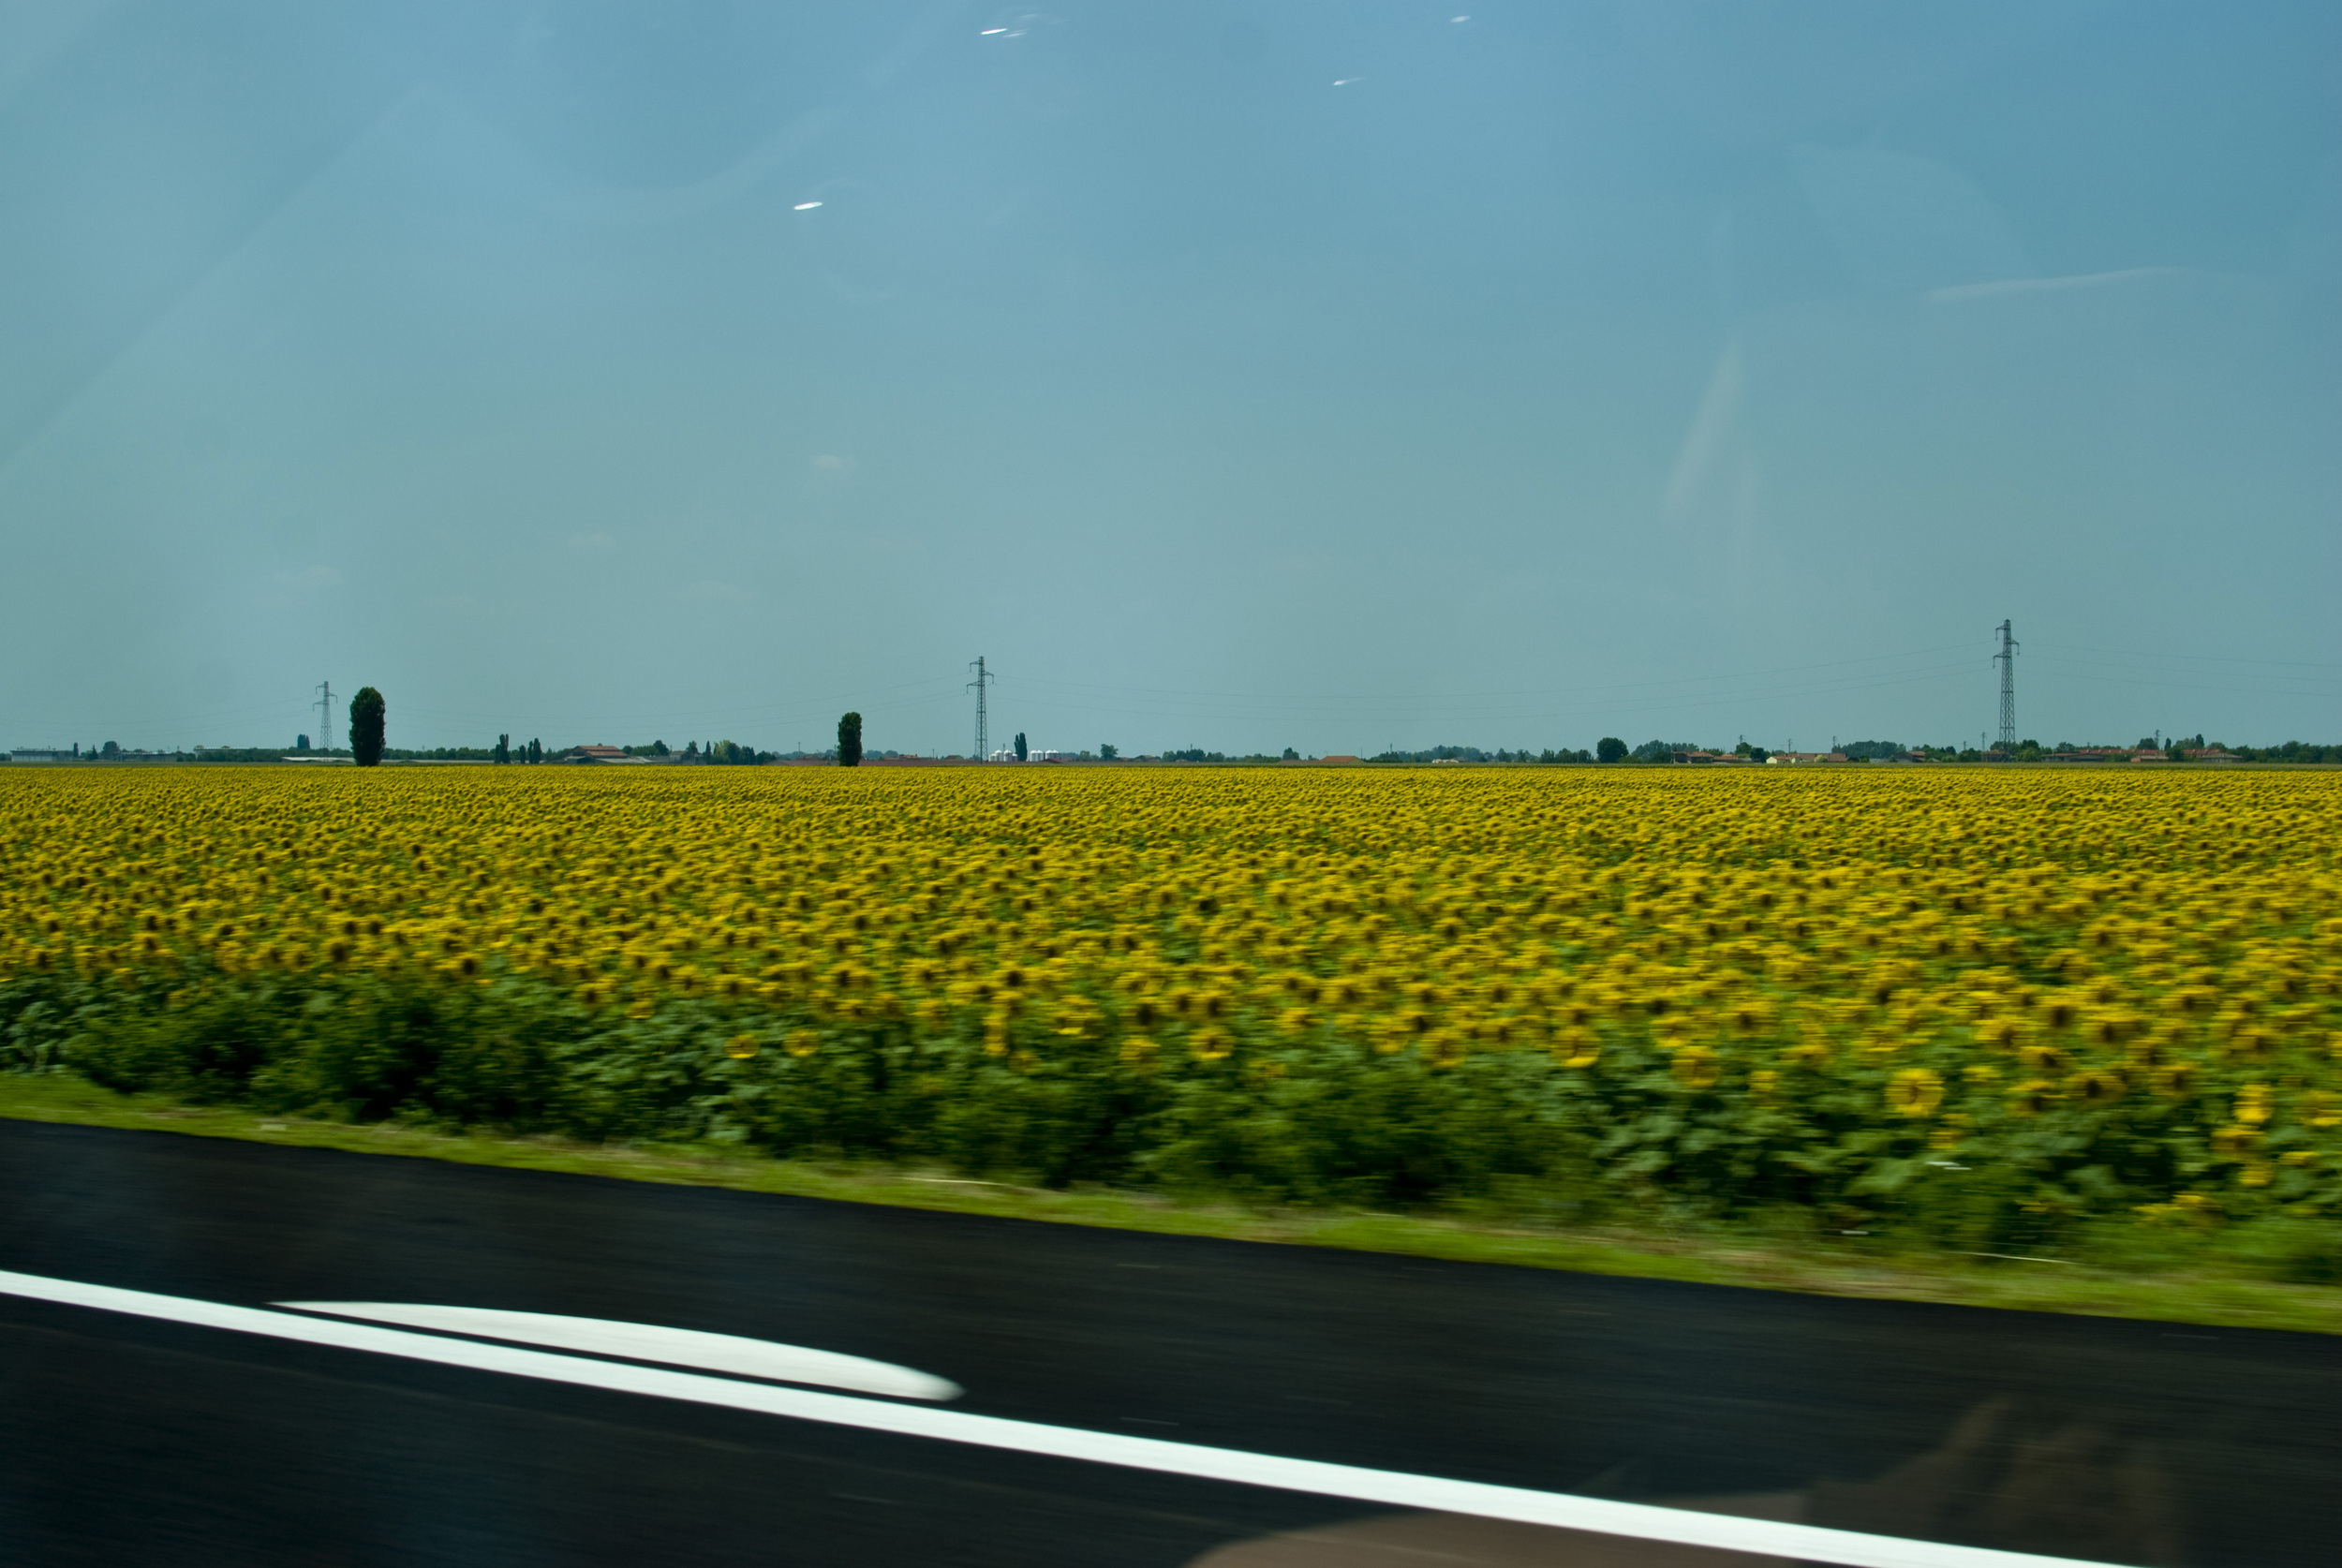 driving-from-venice-to-florence_4797209537_o.jpg